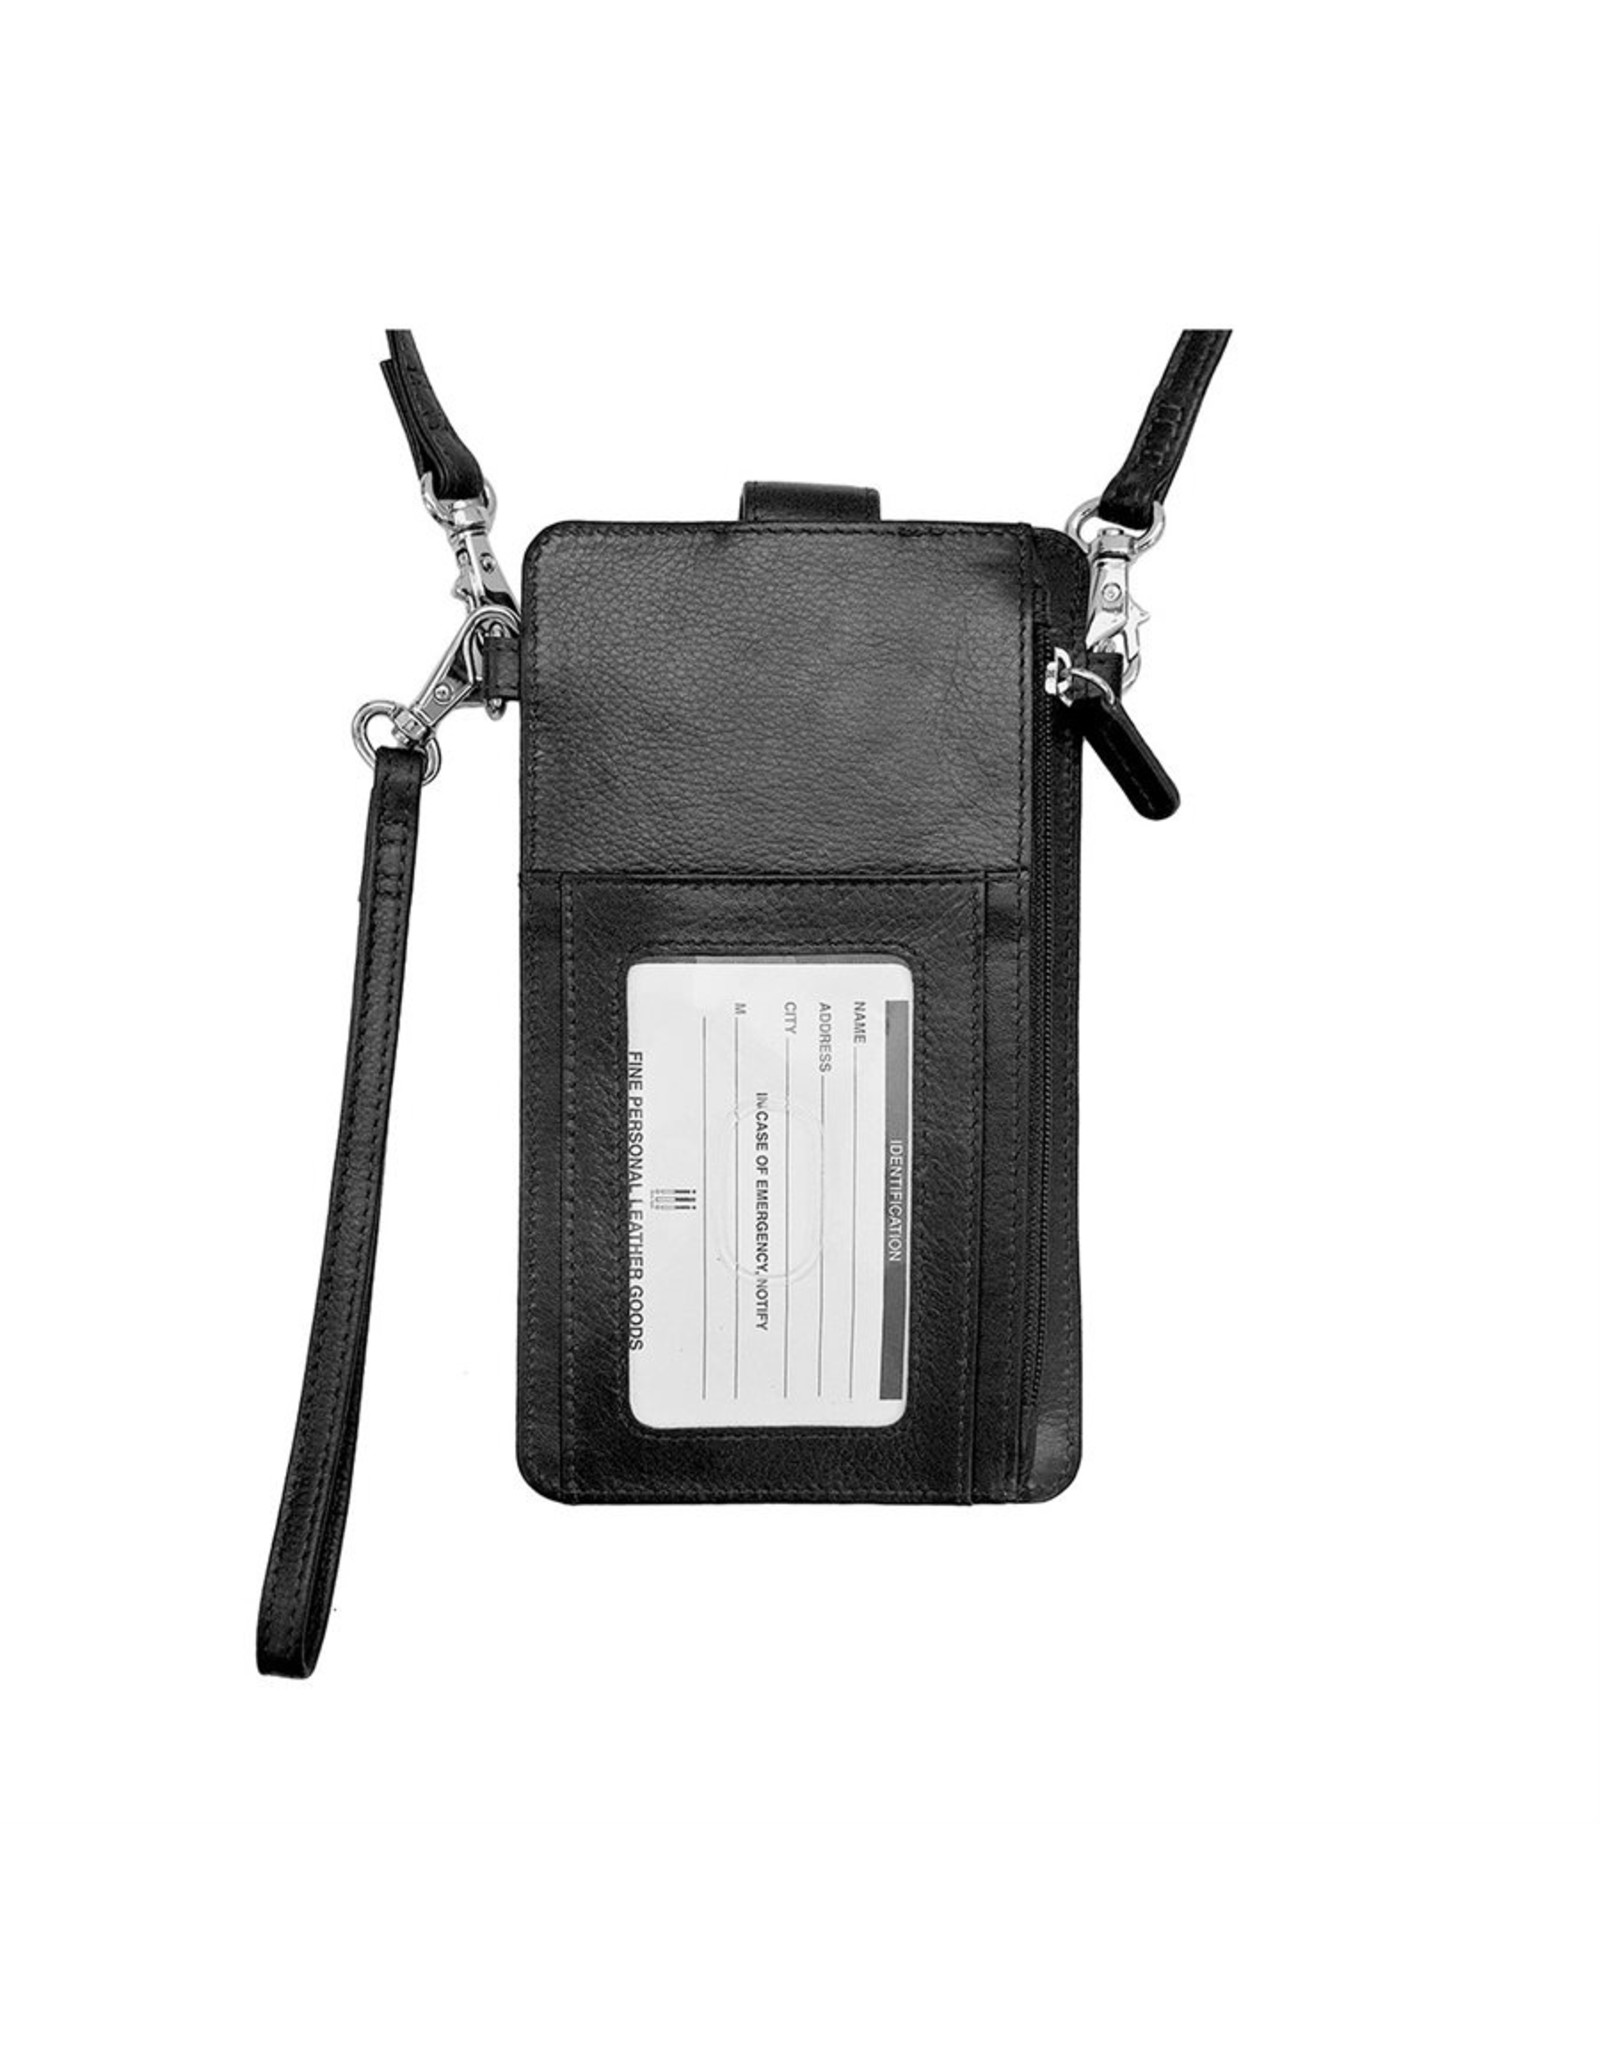 Leather Handbags and Accessories 6368 Smartphone Case Black